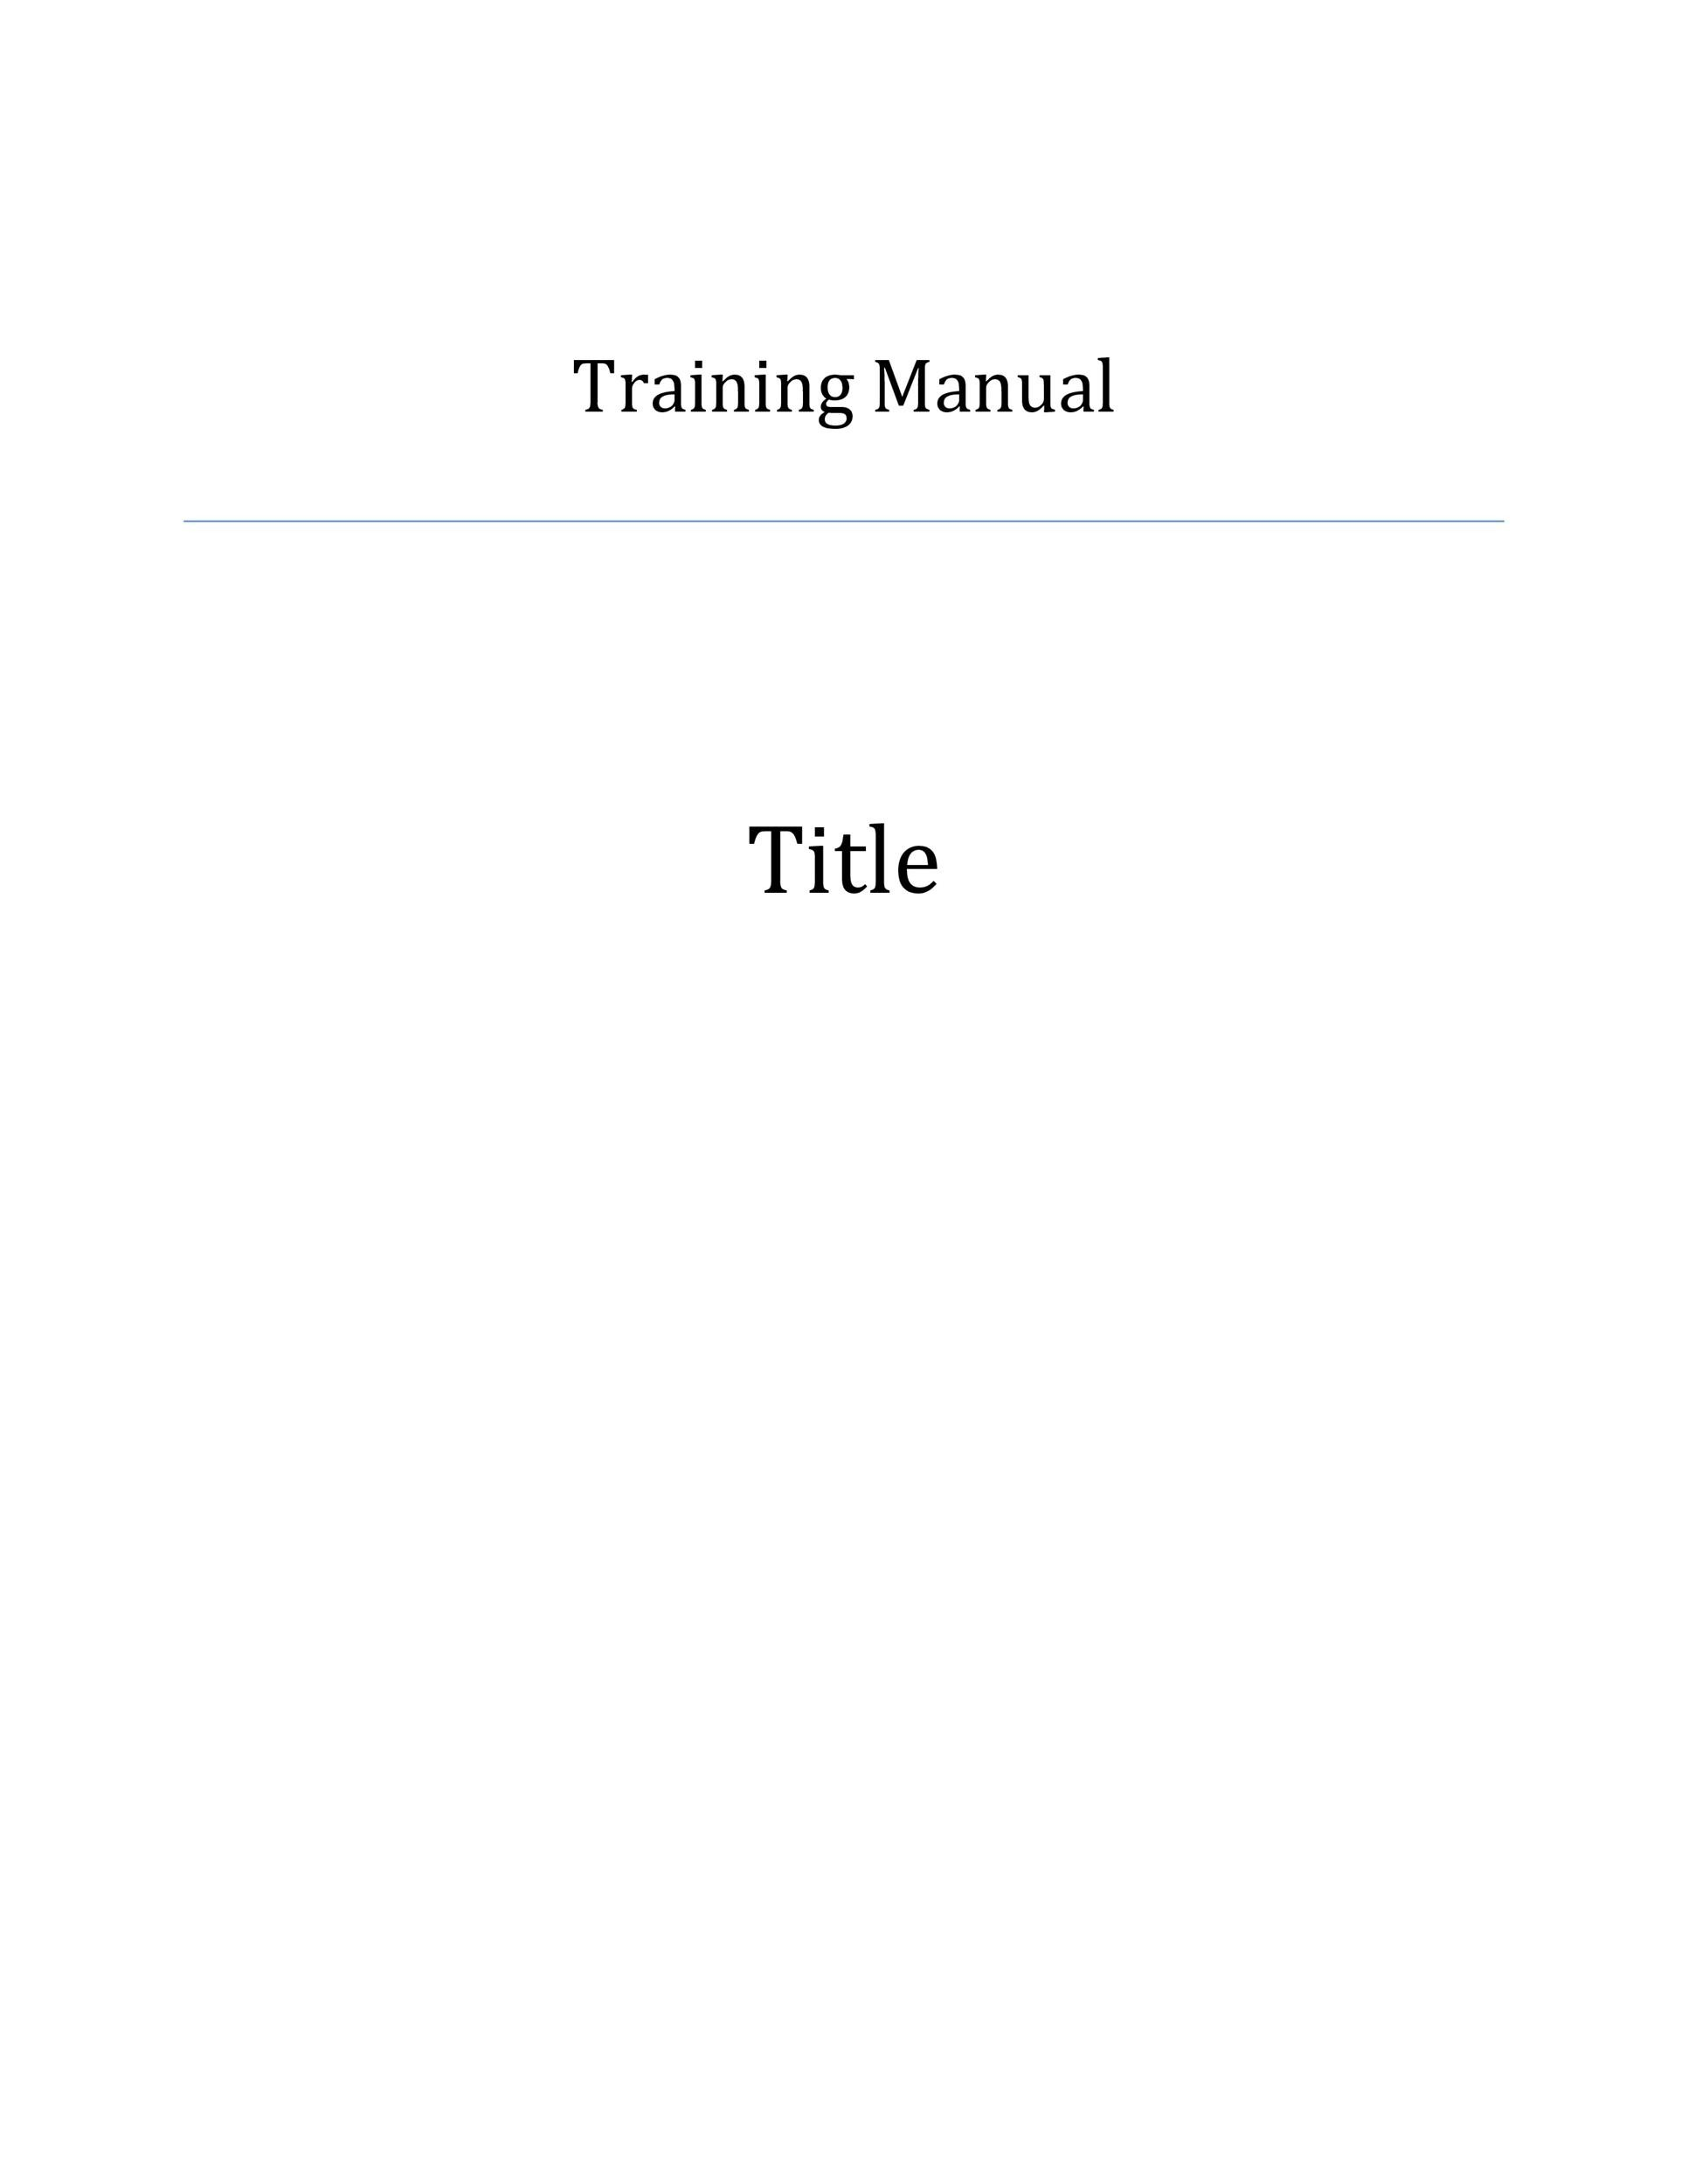 Free training manual template 17